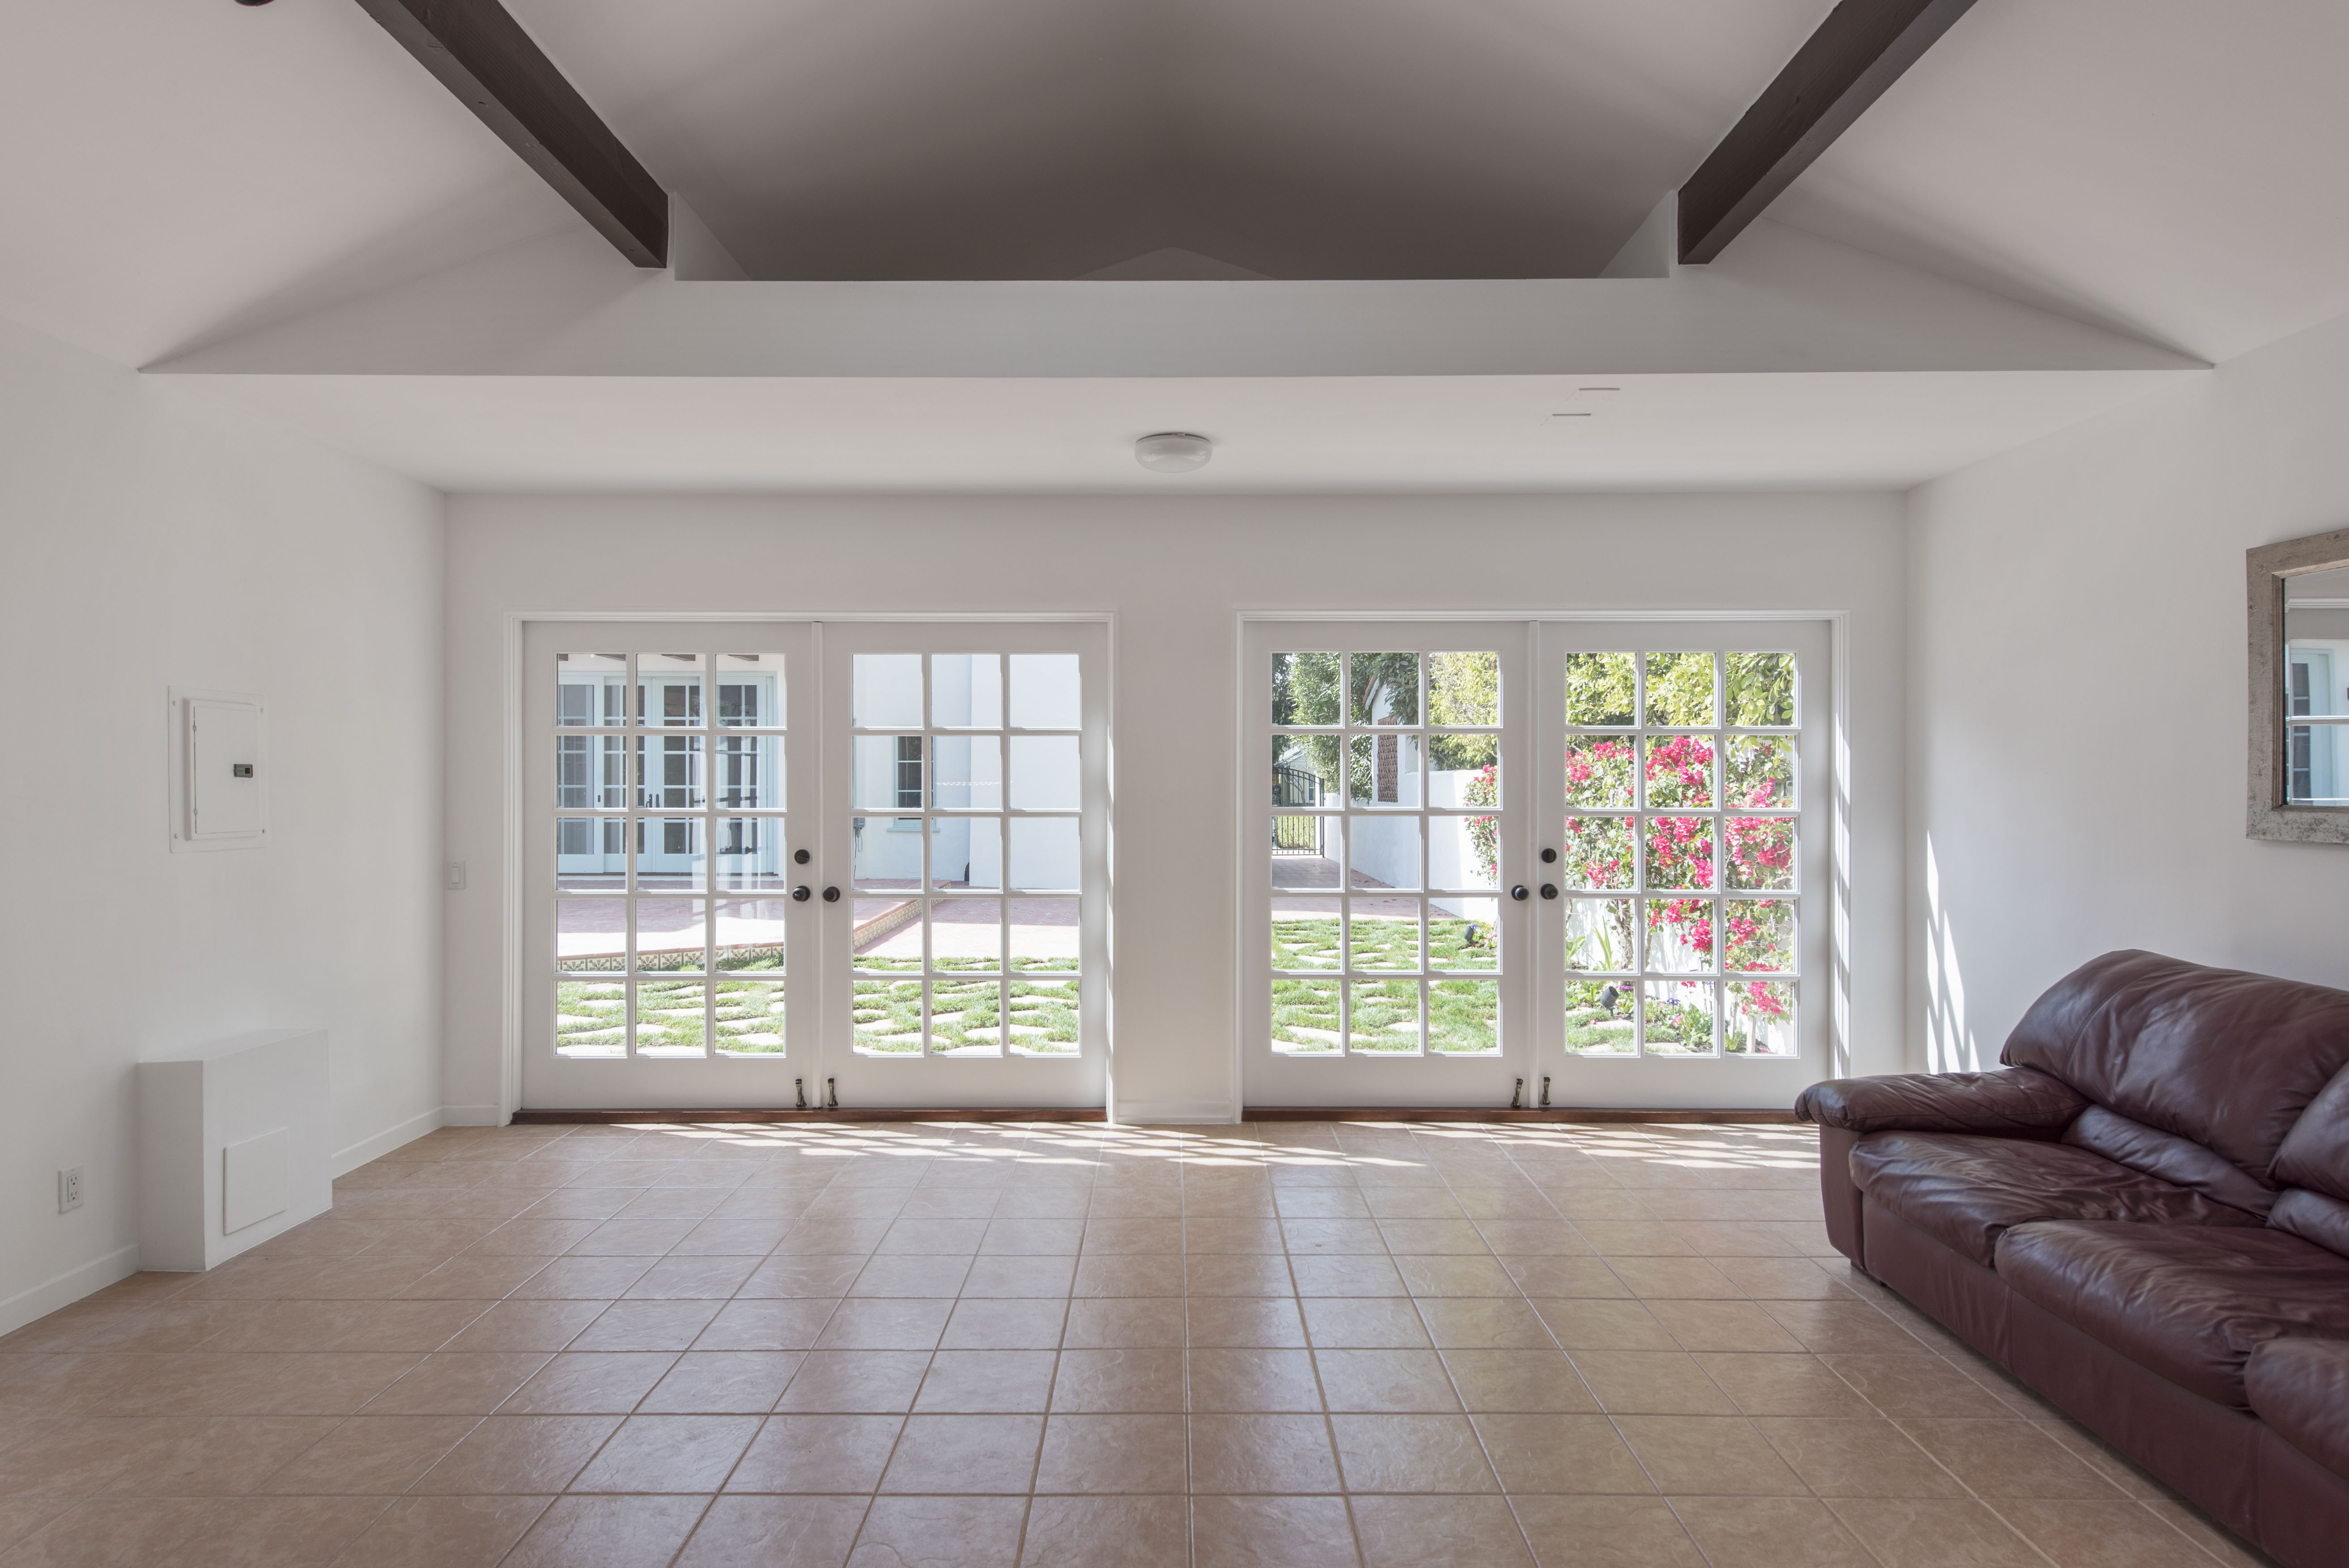 463 19th St, Santa Monica, California 90402, 5 Bedrooms Bedrooms, ,4.5 BathroomsBathrooms,Home,For Rent,19th St,1025